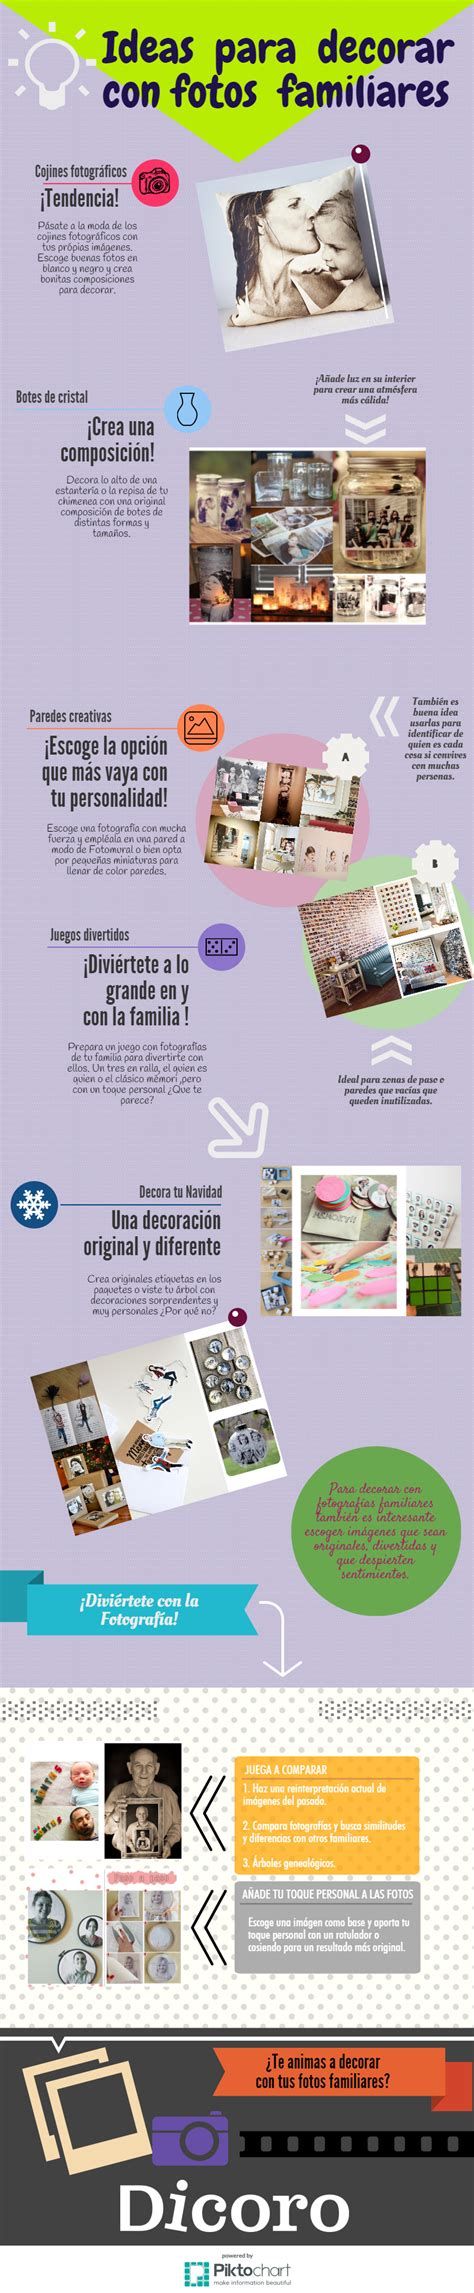 como decorar con fotos familiares 60 brillantes ideas para decorar con fotos familiares